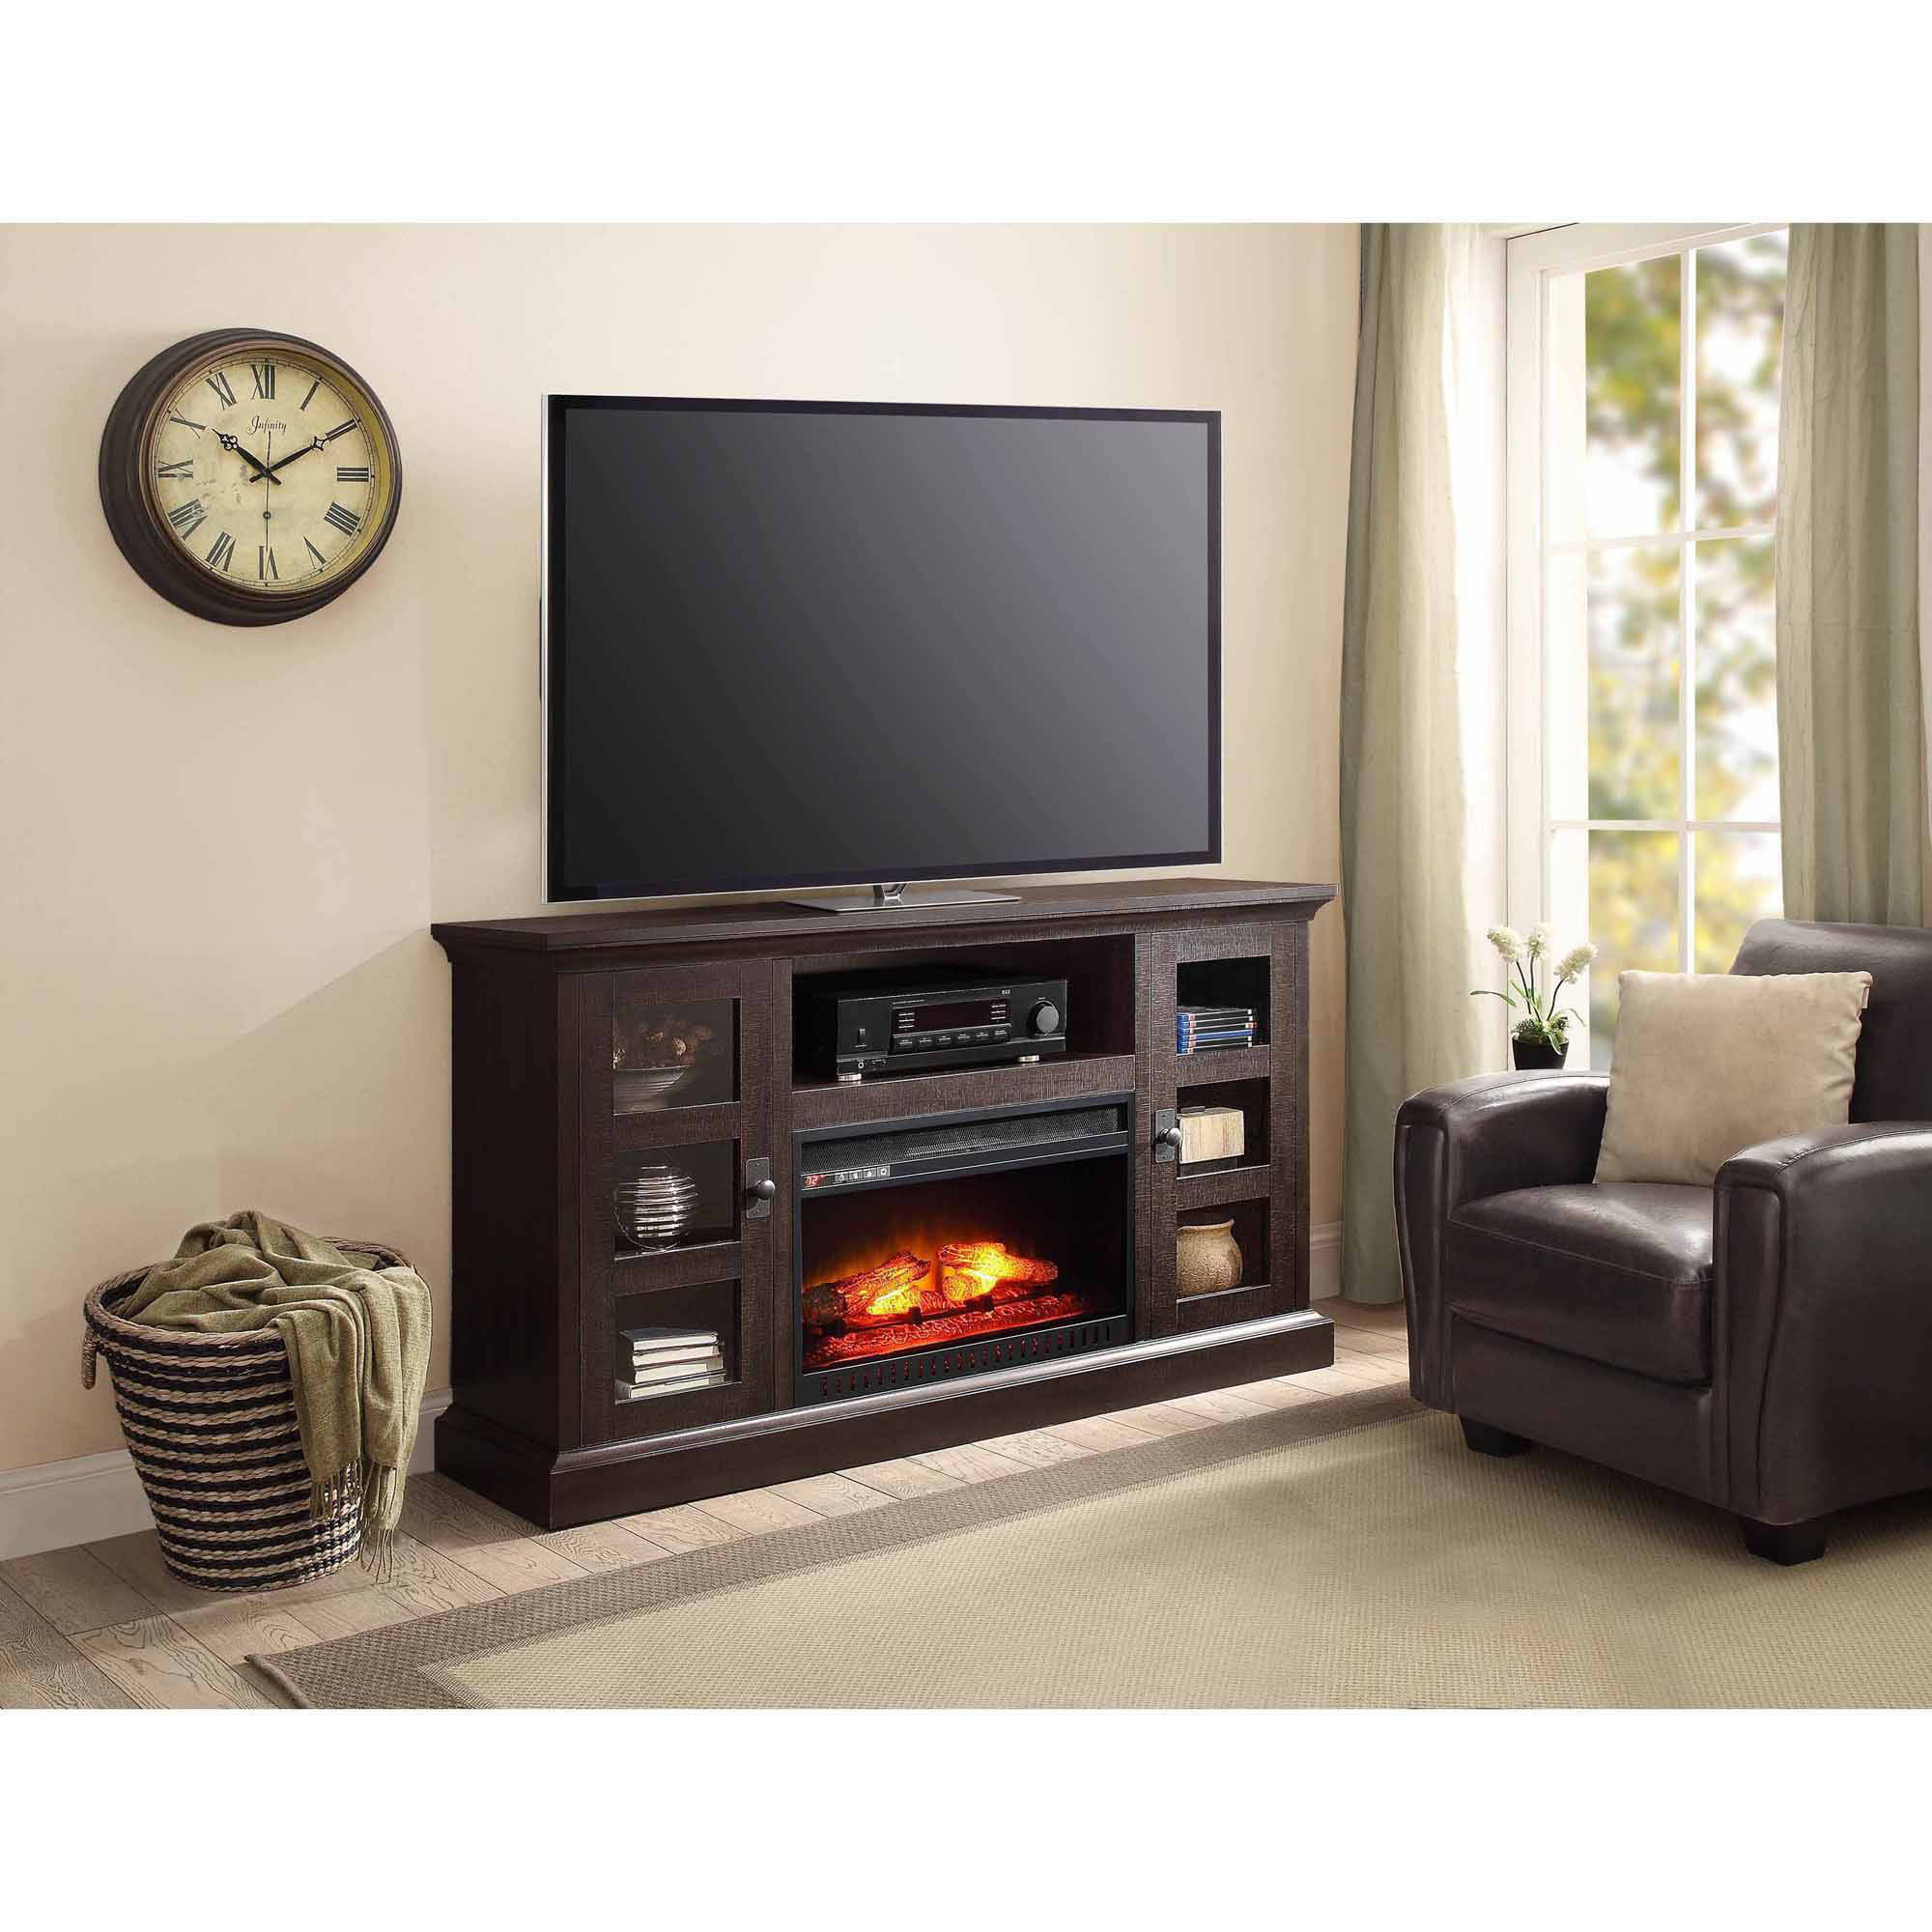 ly $249 for Whalen Media Fireplace Console for TV's up